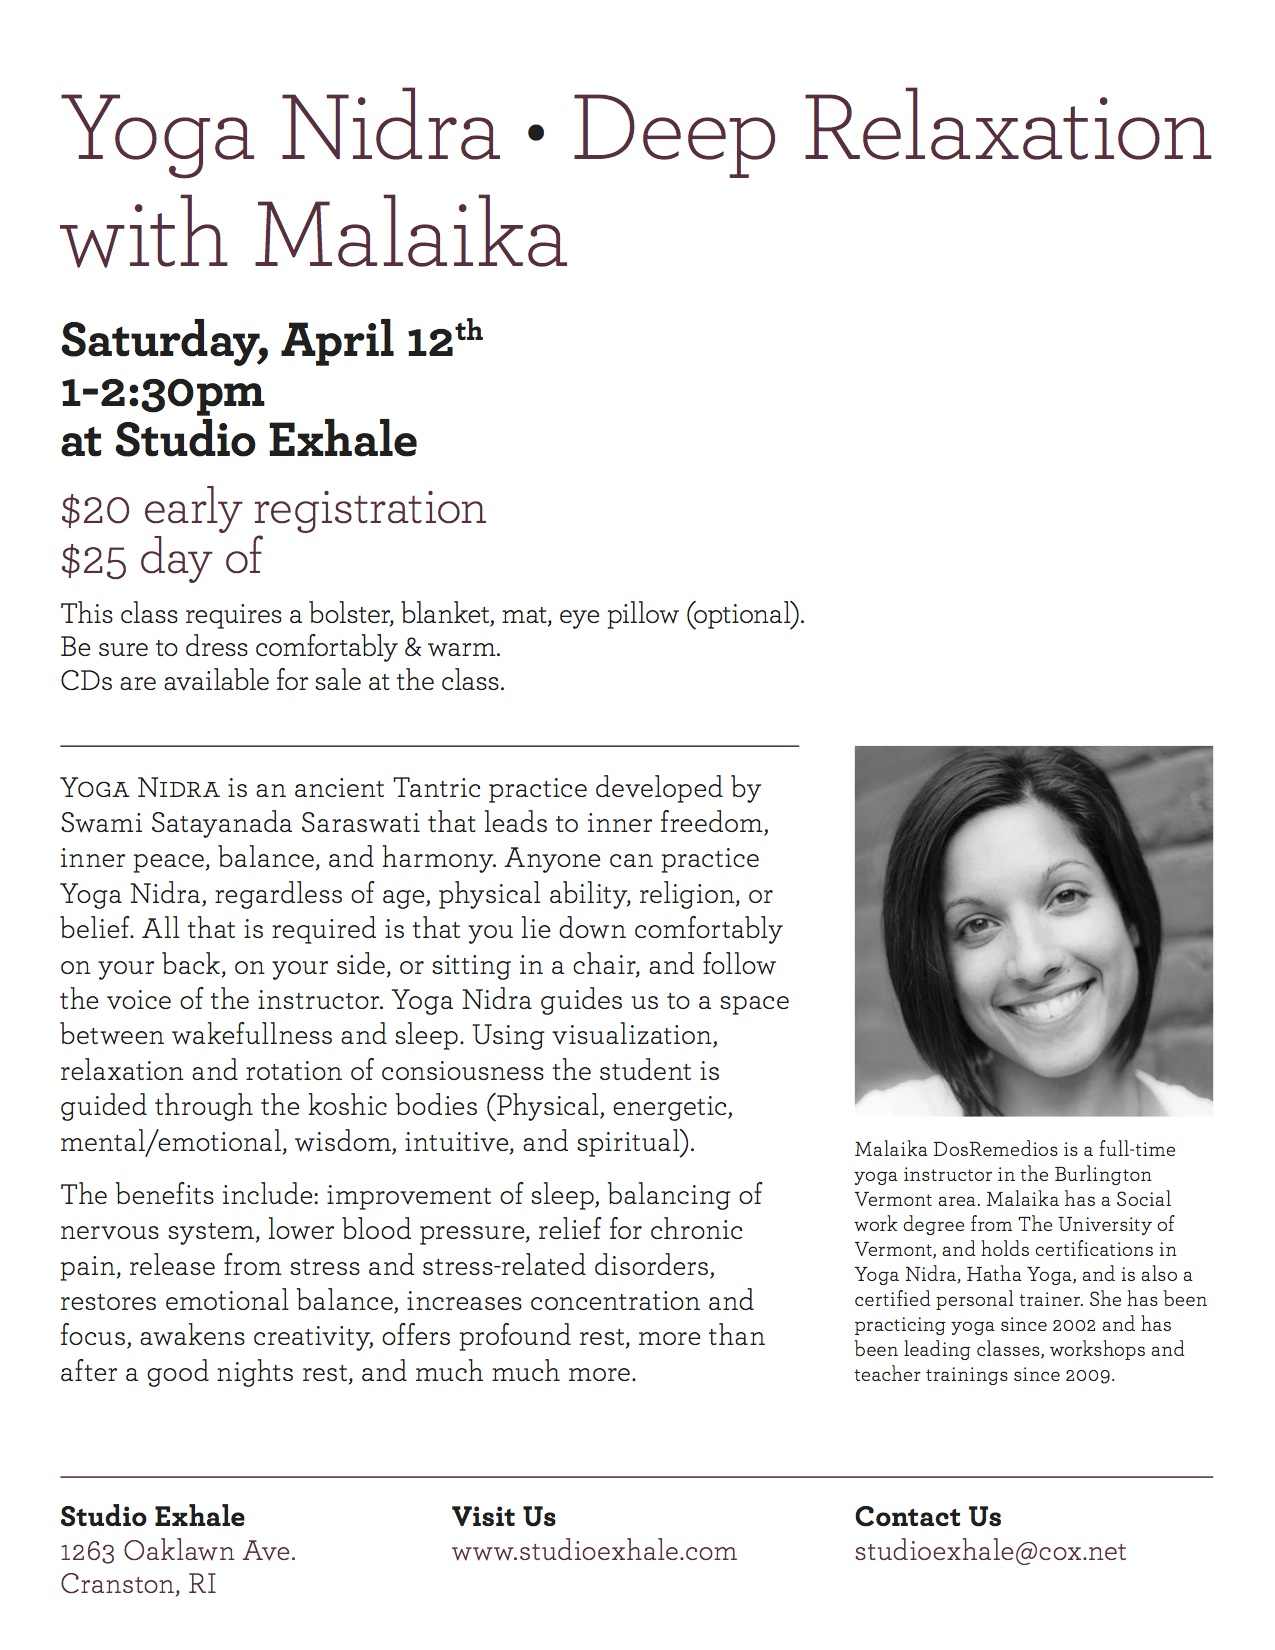 malaika_exhale_flyer_4-12 copy